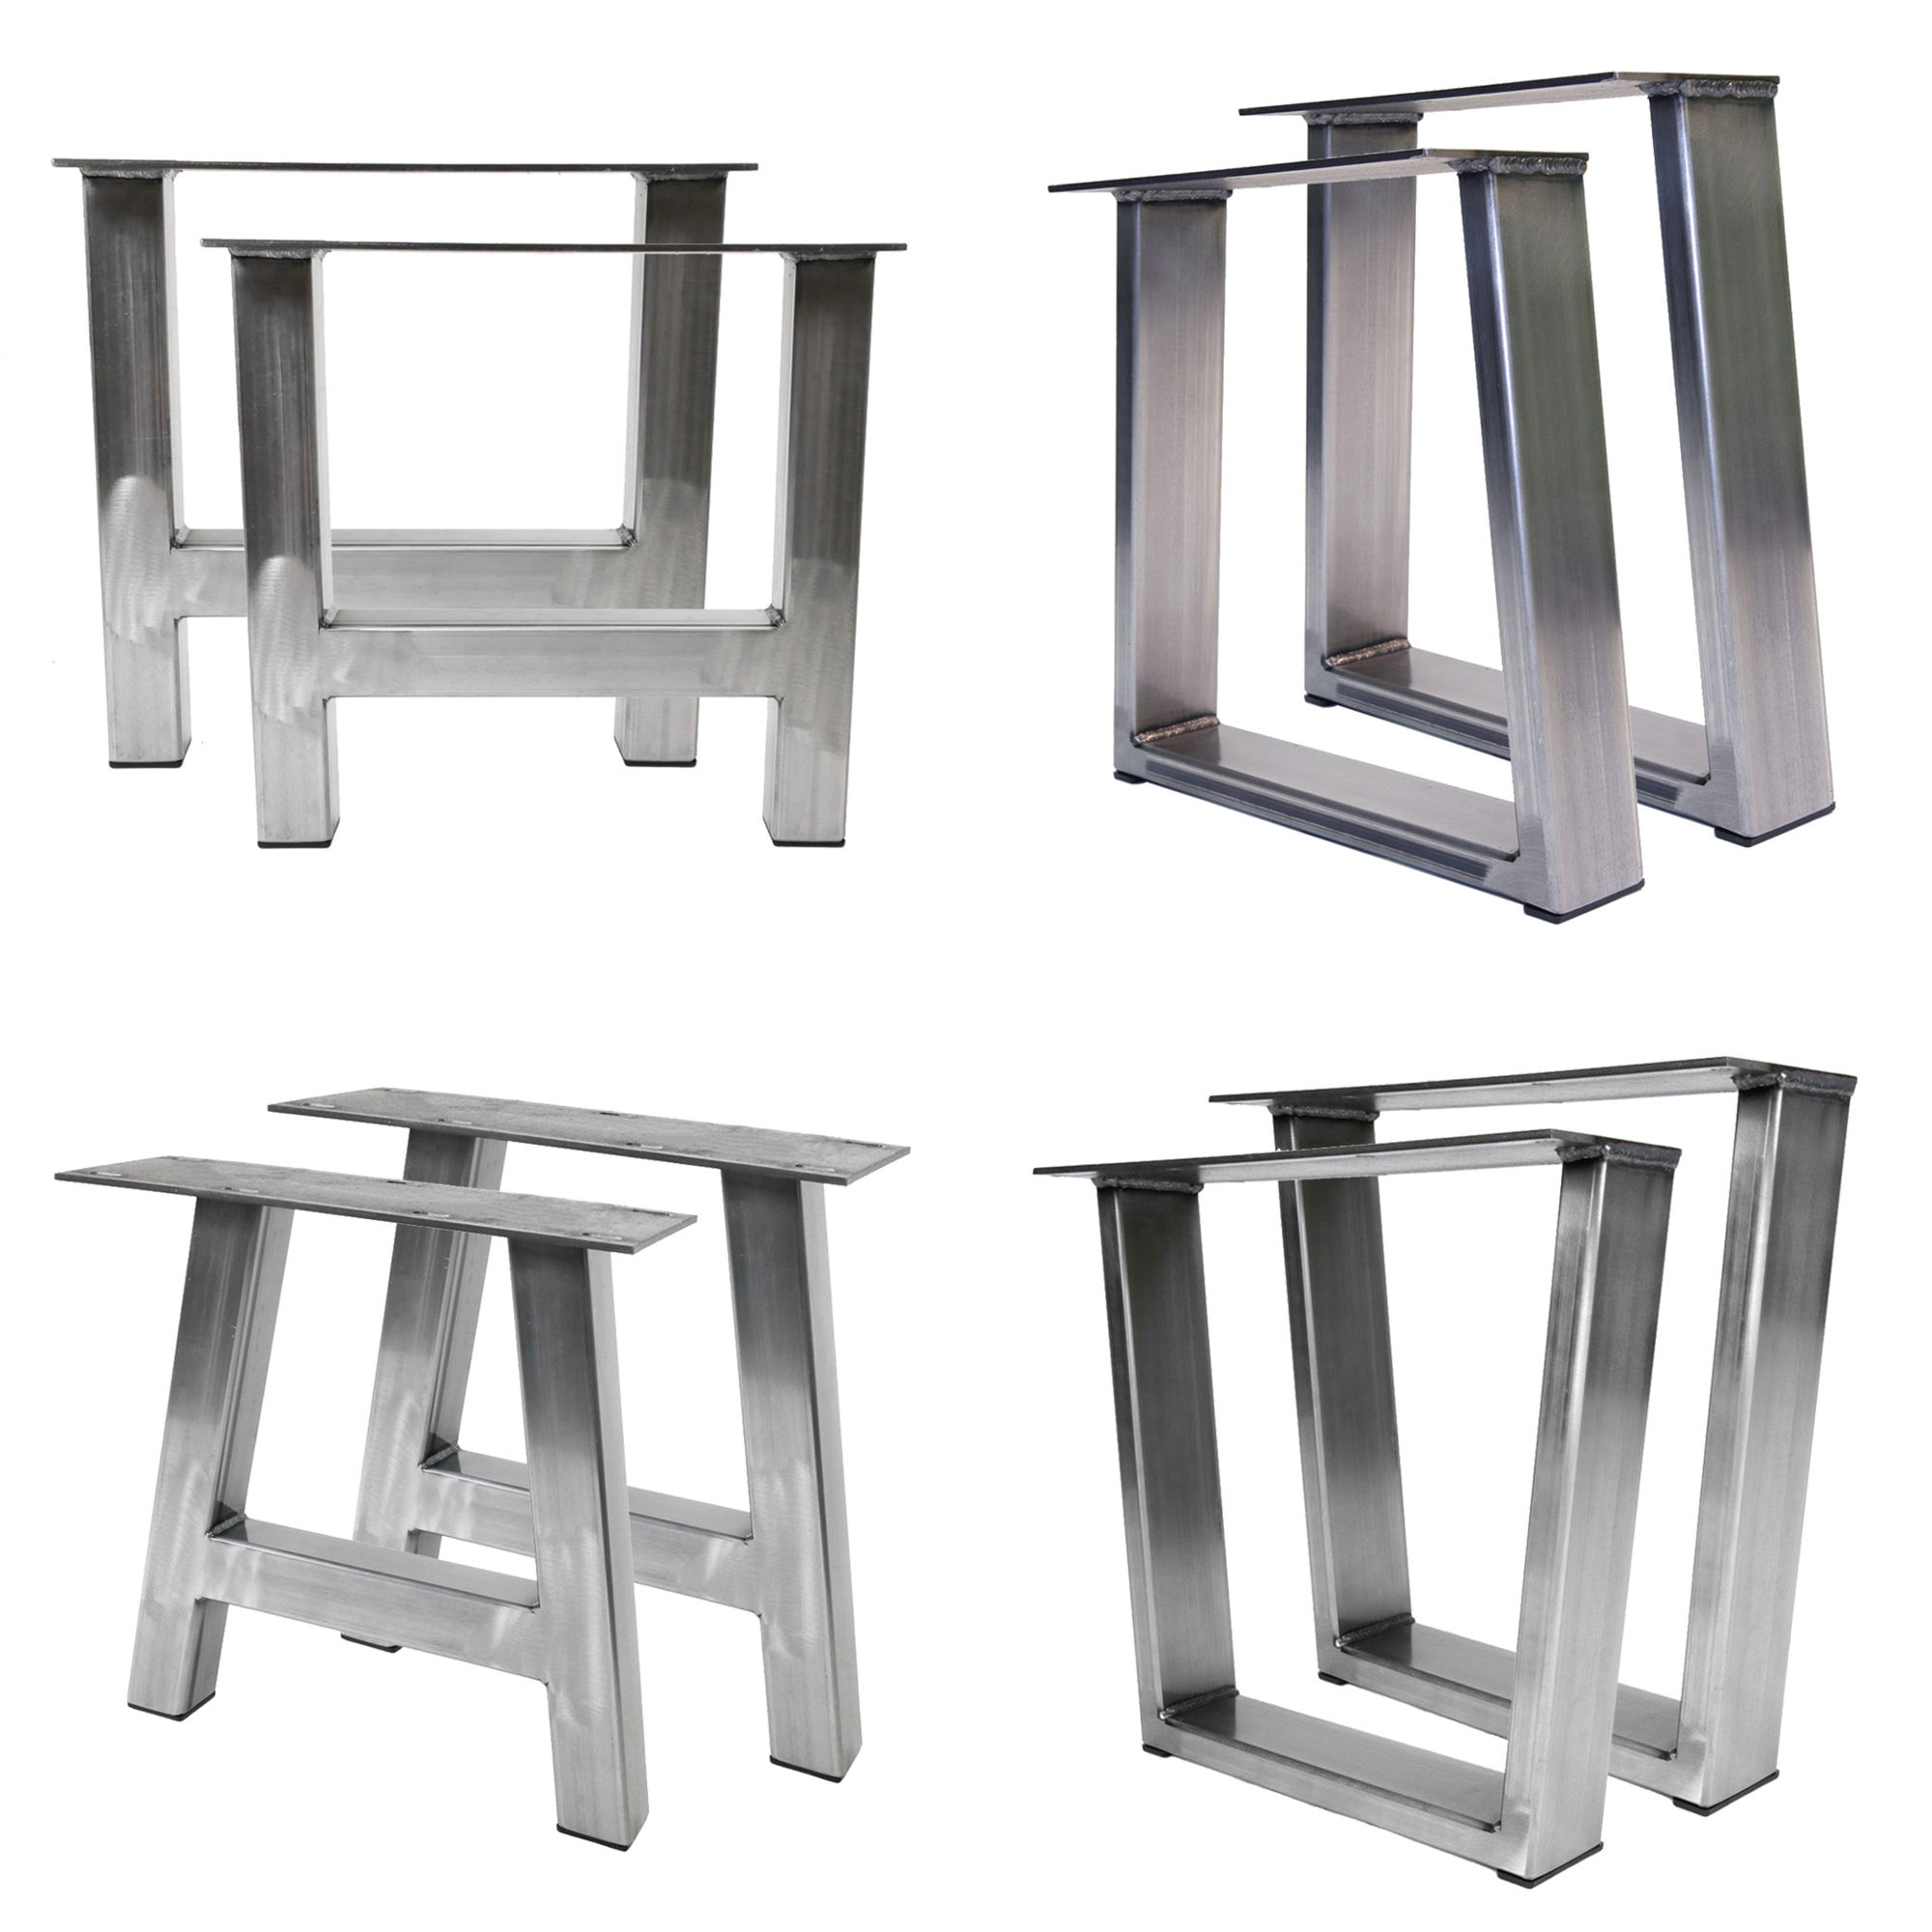 Stainless Steel Table Legs Furniture Feet Frame Brushed Polished Square Console End Side Bench Coffee Stainless Steel Table Legs